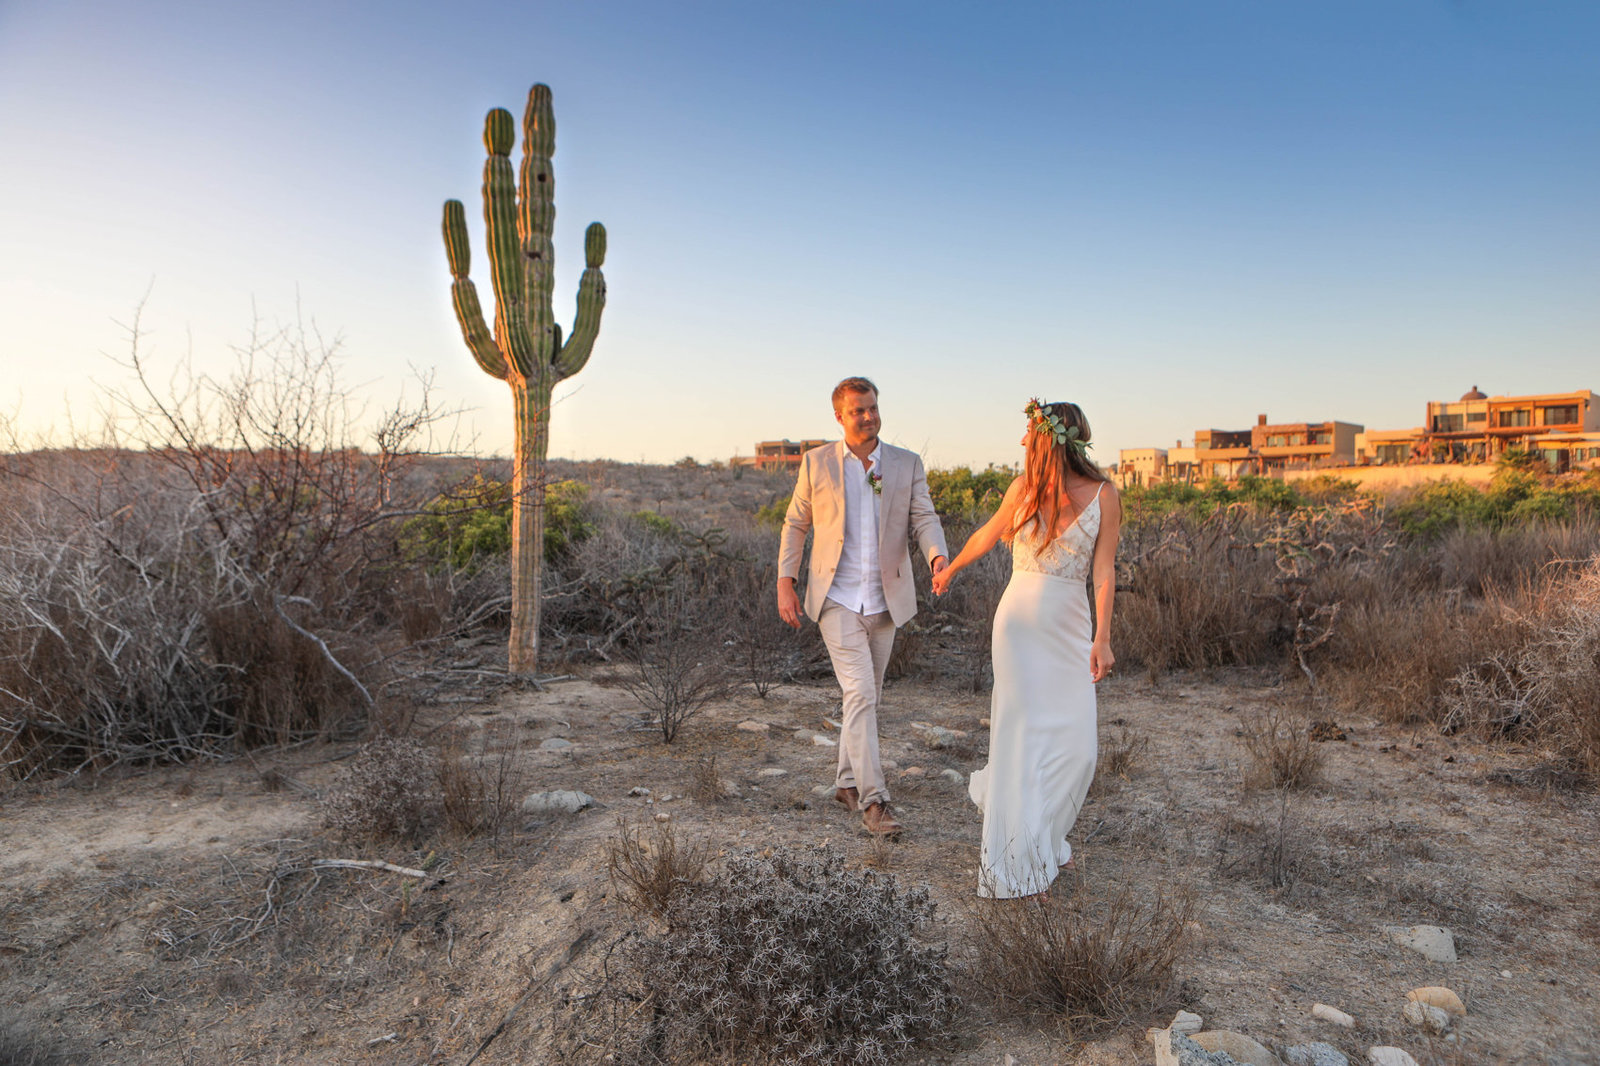 Stunning mexican desert provides beautiful backdrop for golden hour portrait of bride and groom